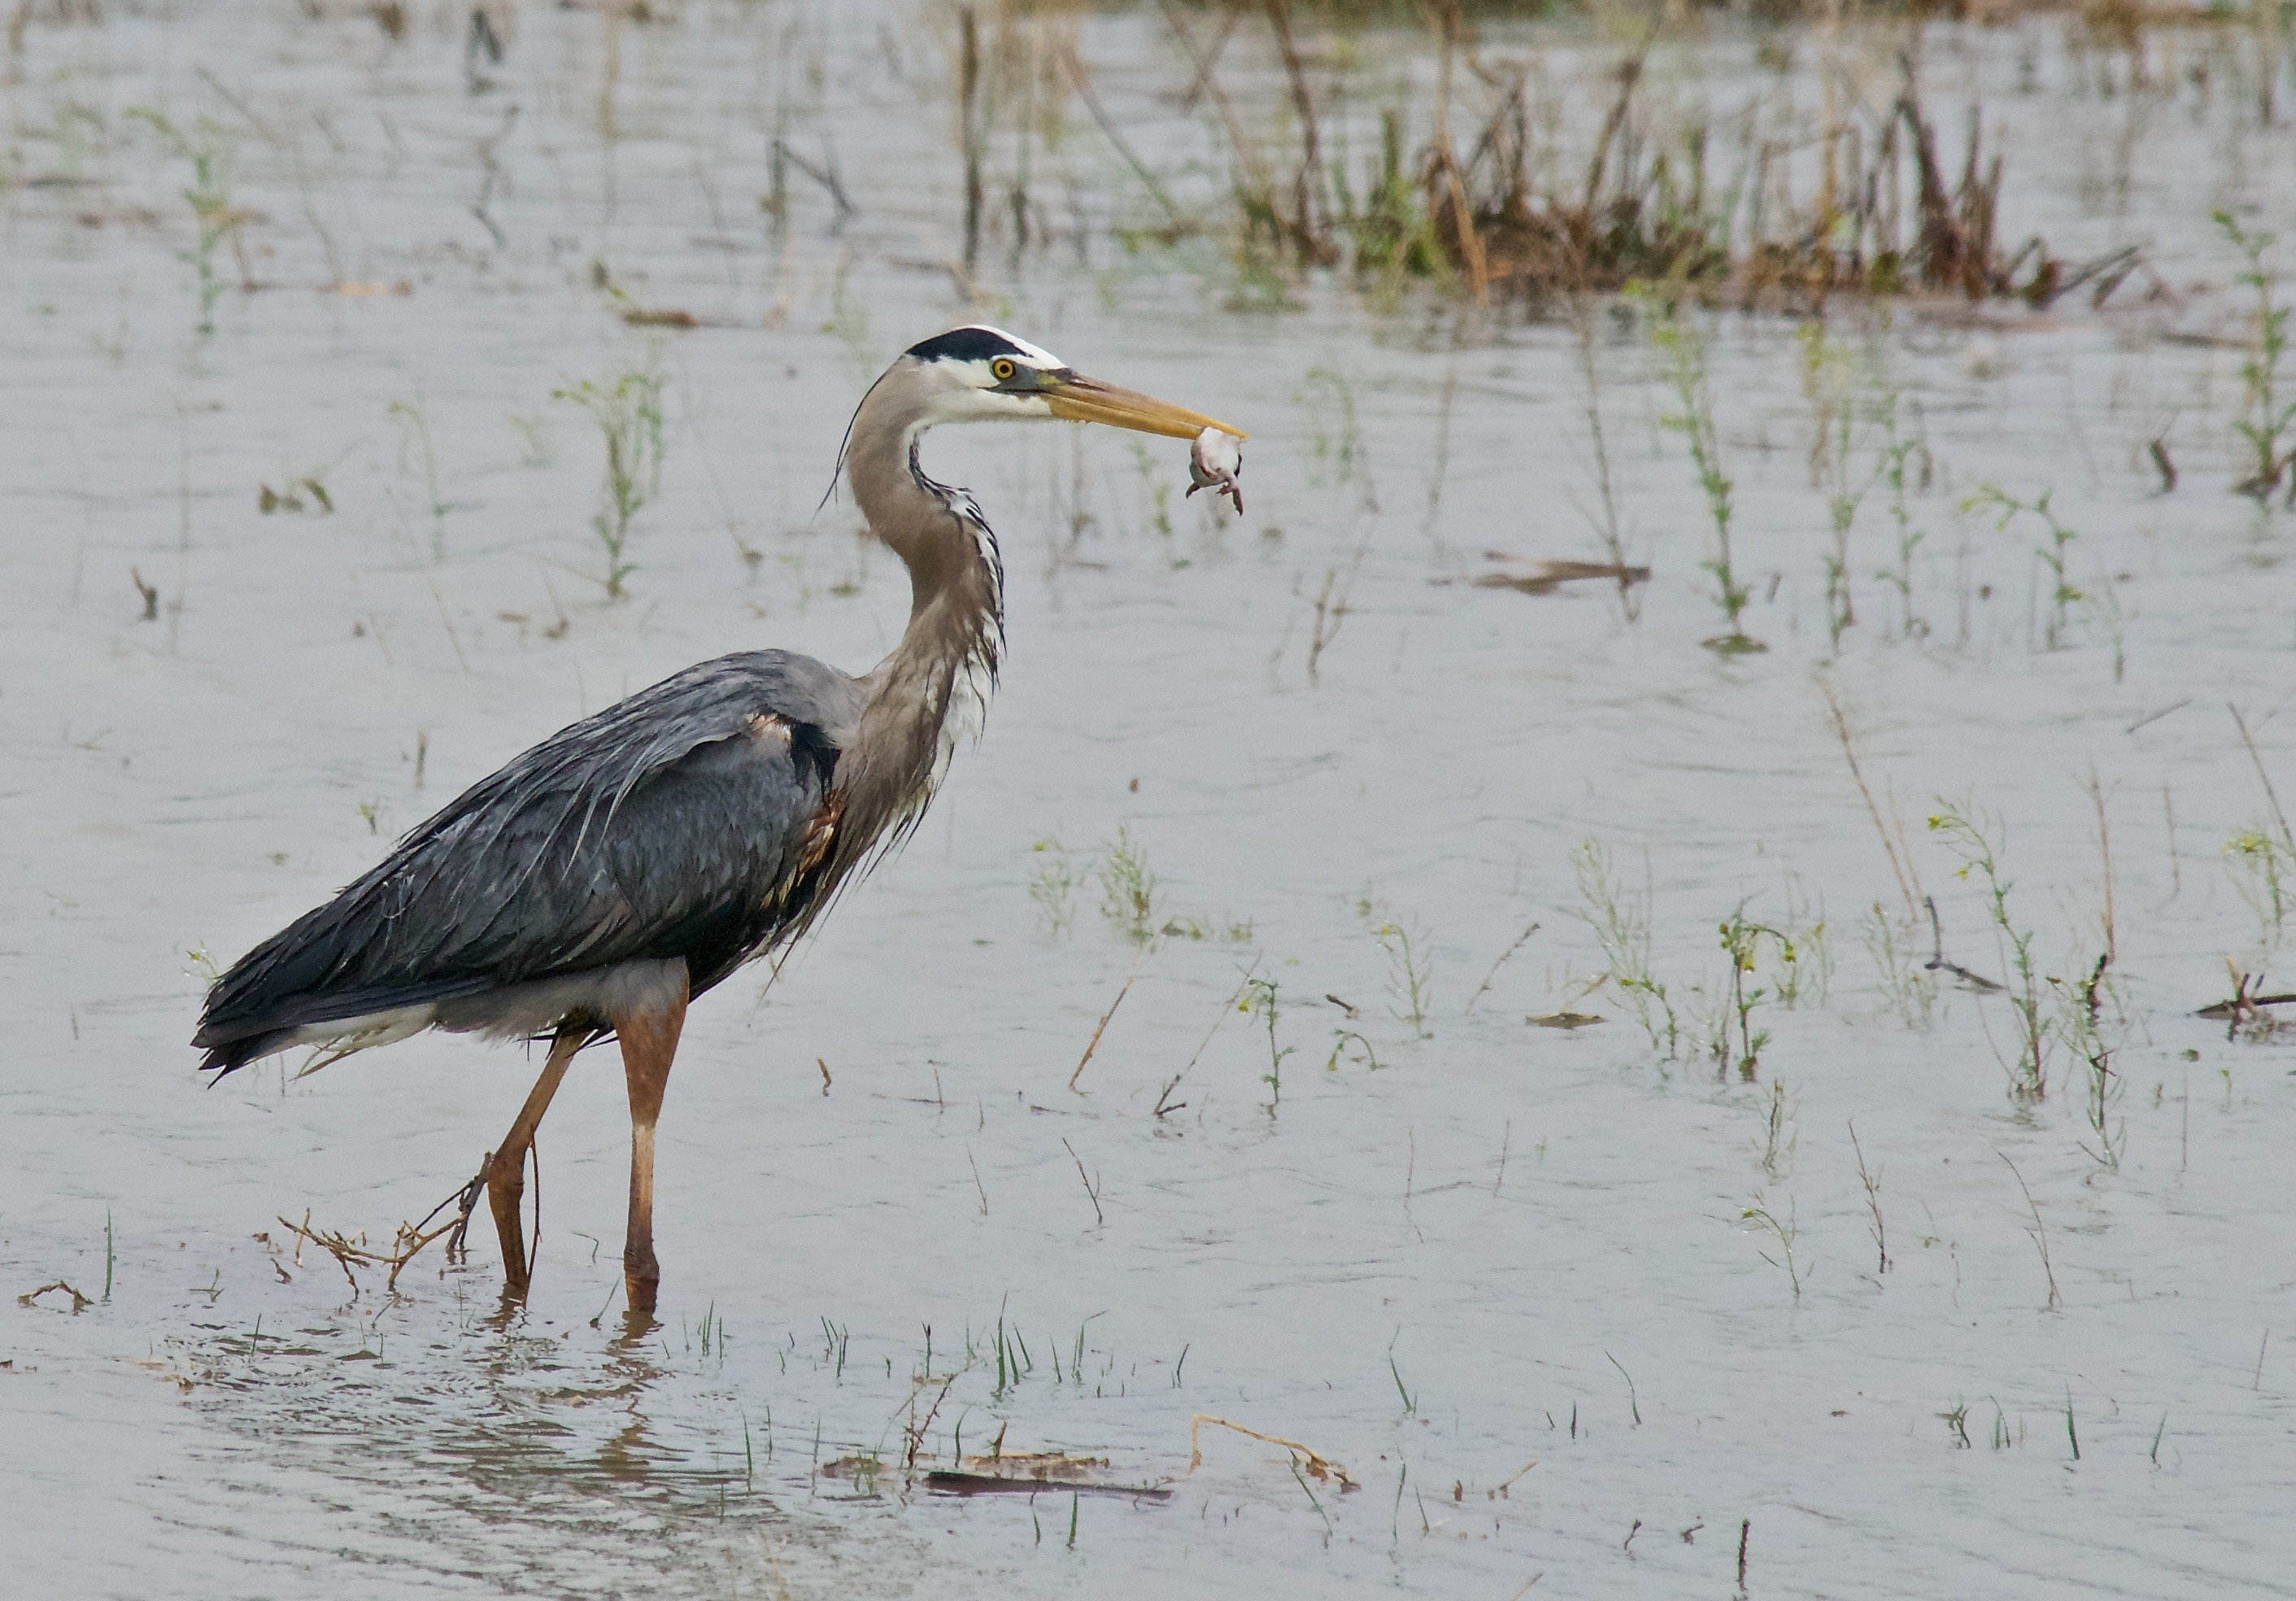 Great Bleu Heron